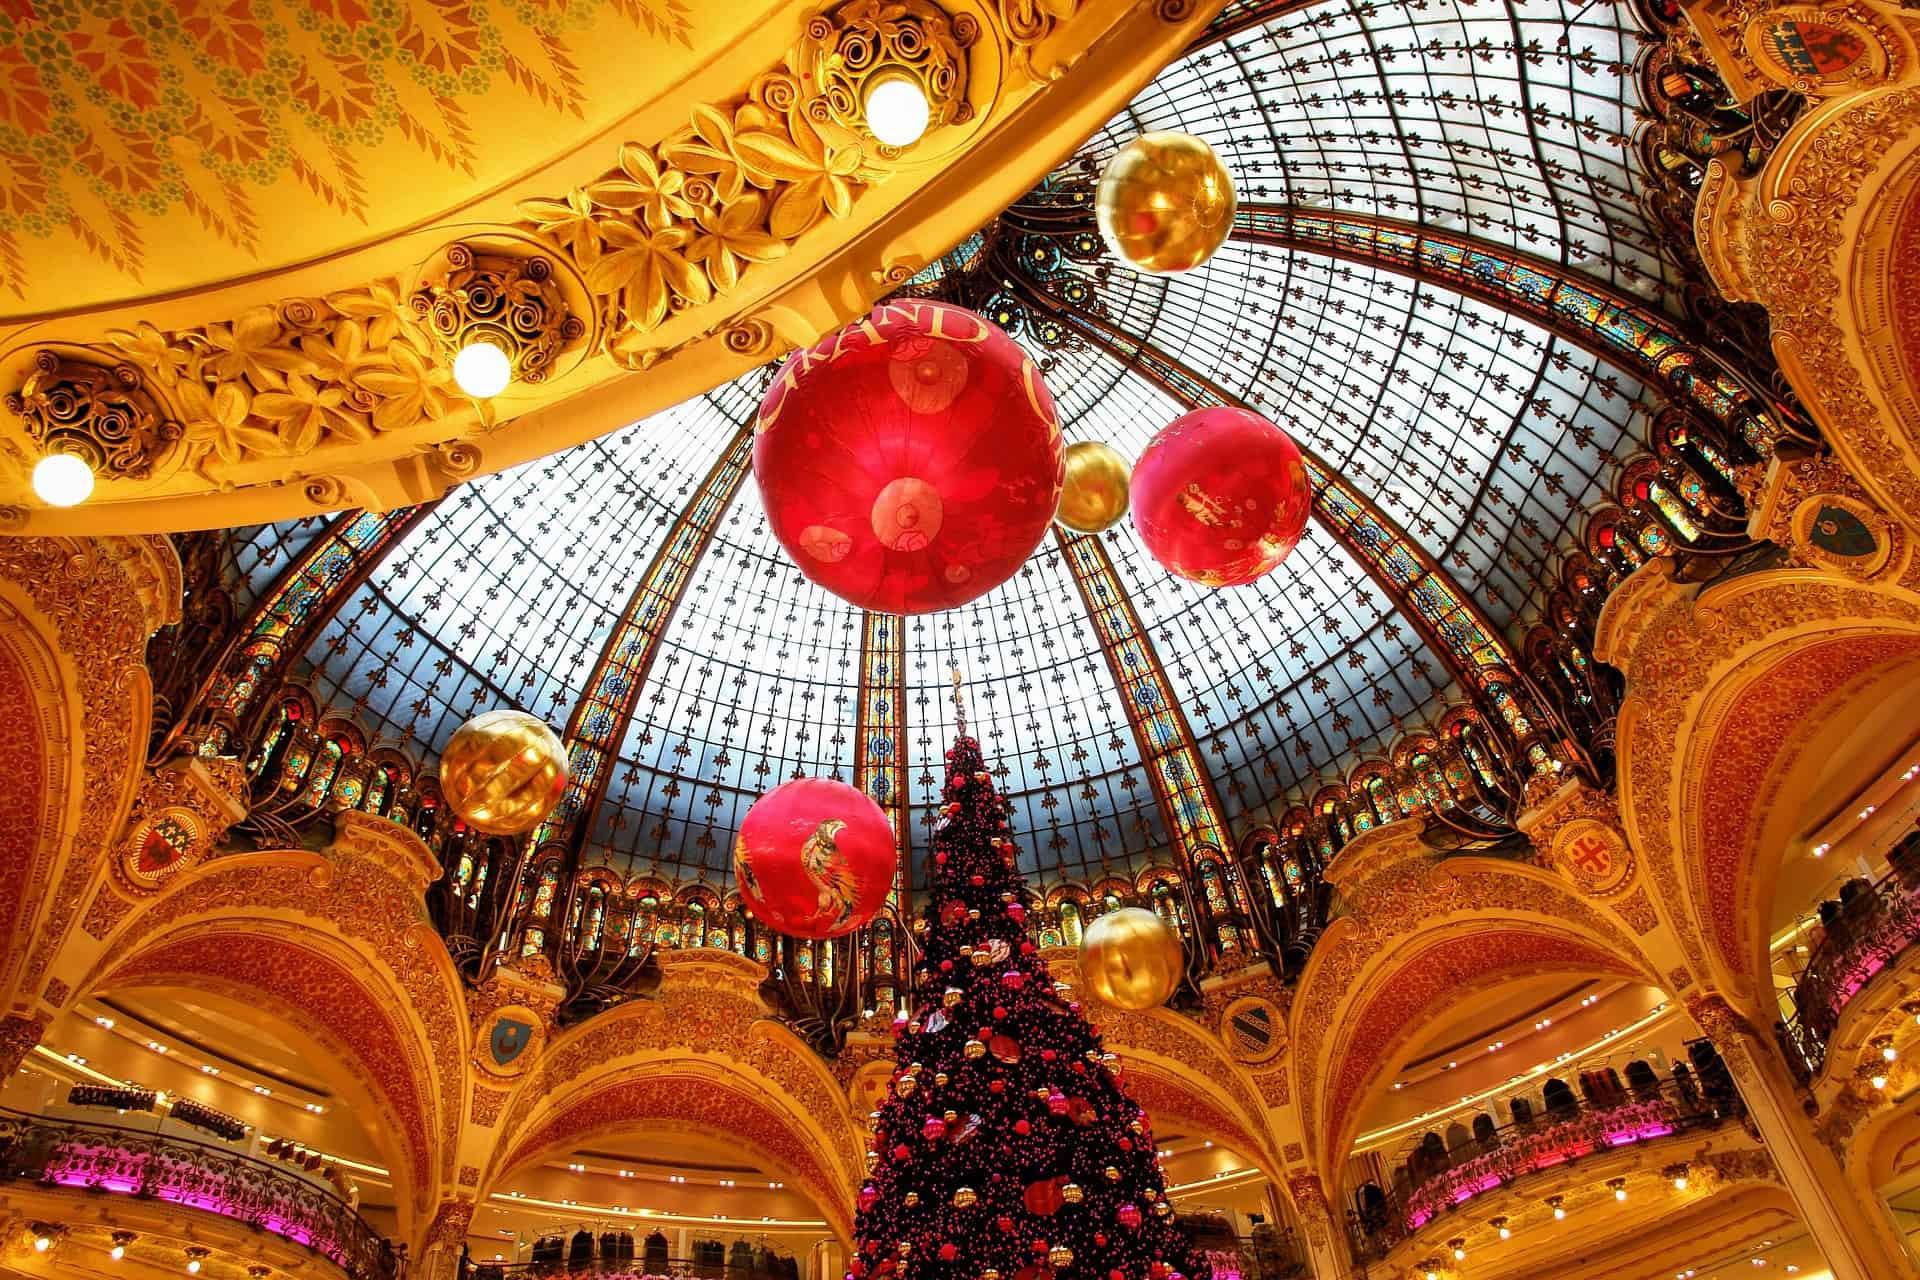 France - Paris - Galeries Lafayette - Grand dome at Christmas shopping time great for Paris souvenirs